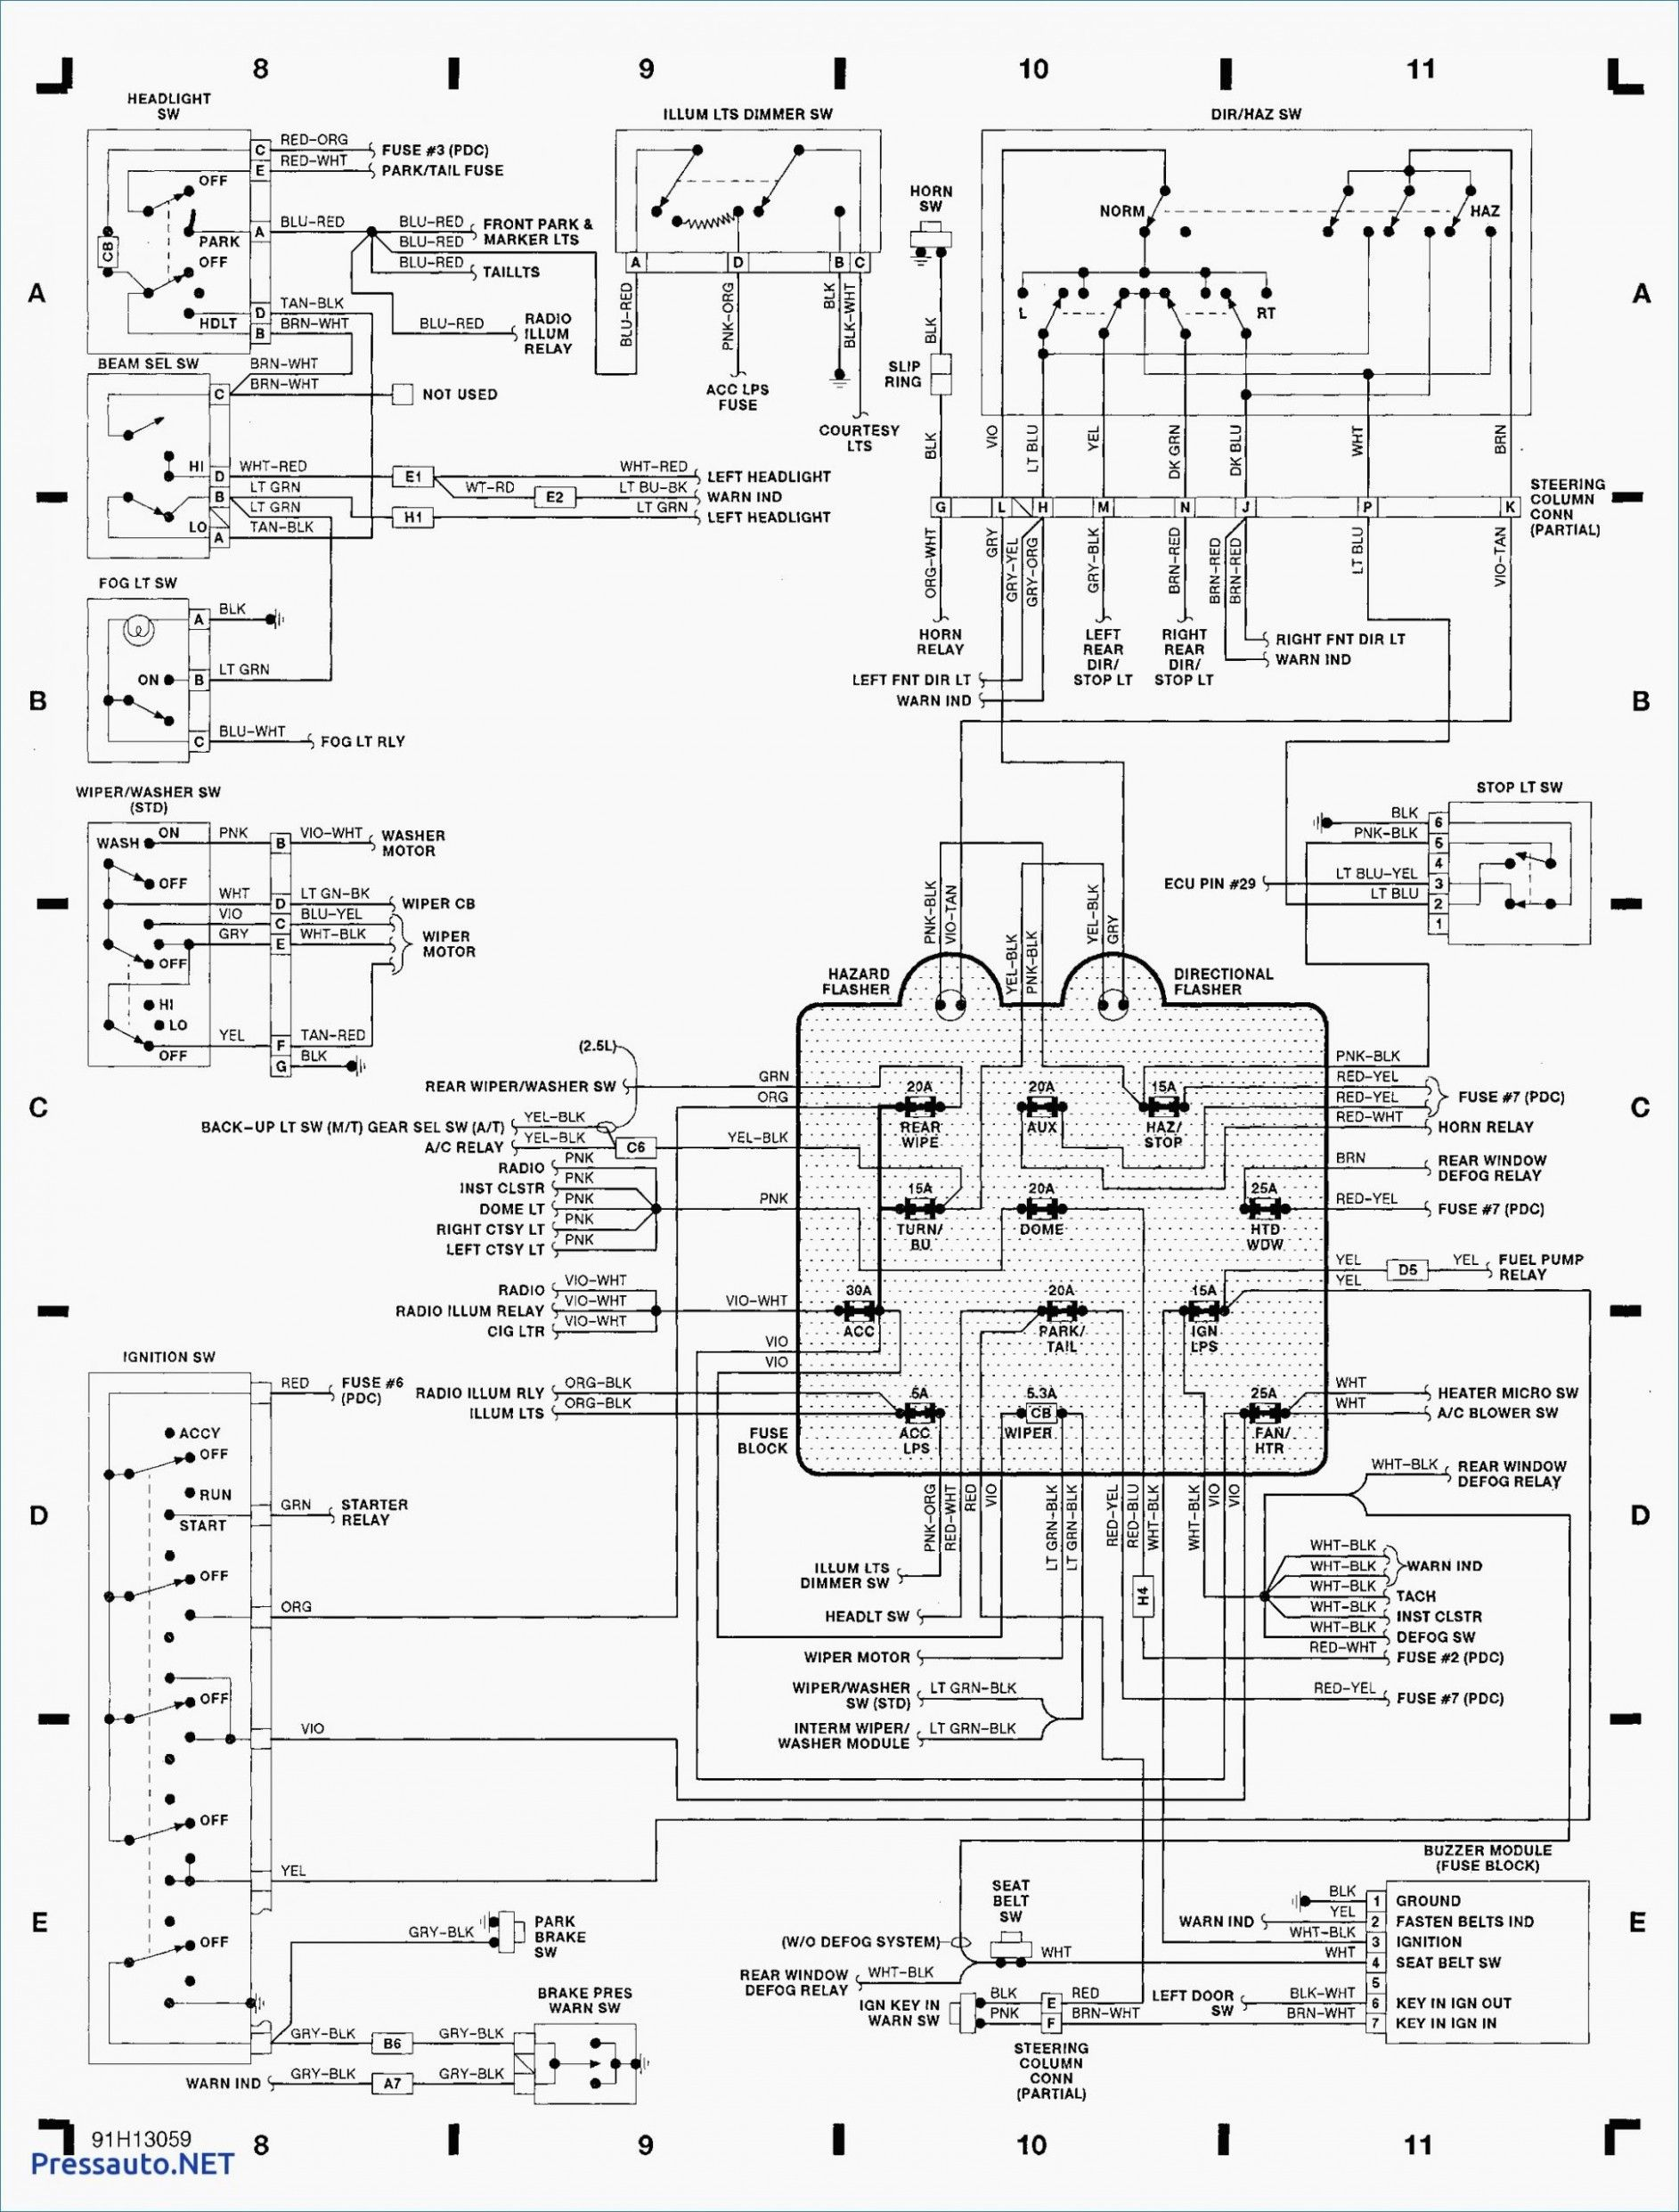 2005 Jeep Wrangler Wiring Diagram - Wiring Diagram Replace craft-activity -  craft-activity.miramontiseo.it | 2005 Jeep Wrangler Automatic Transmission Diagram Wiring |  | craft-activity.miramontiseo.it